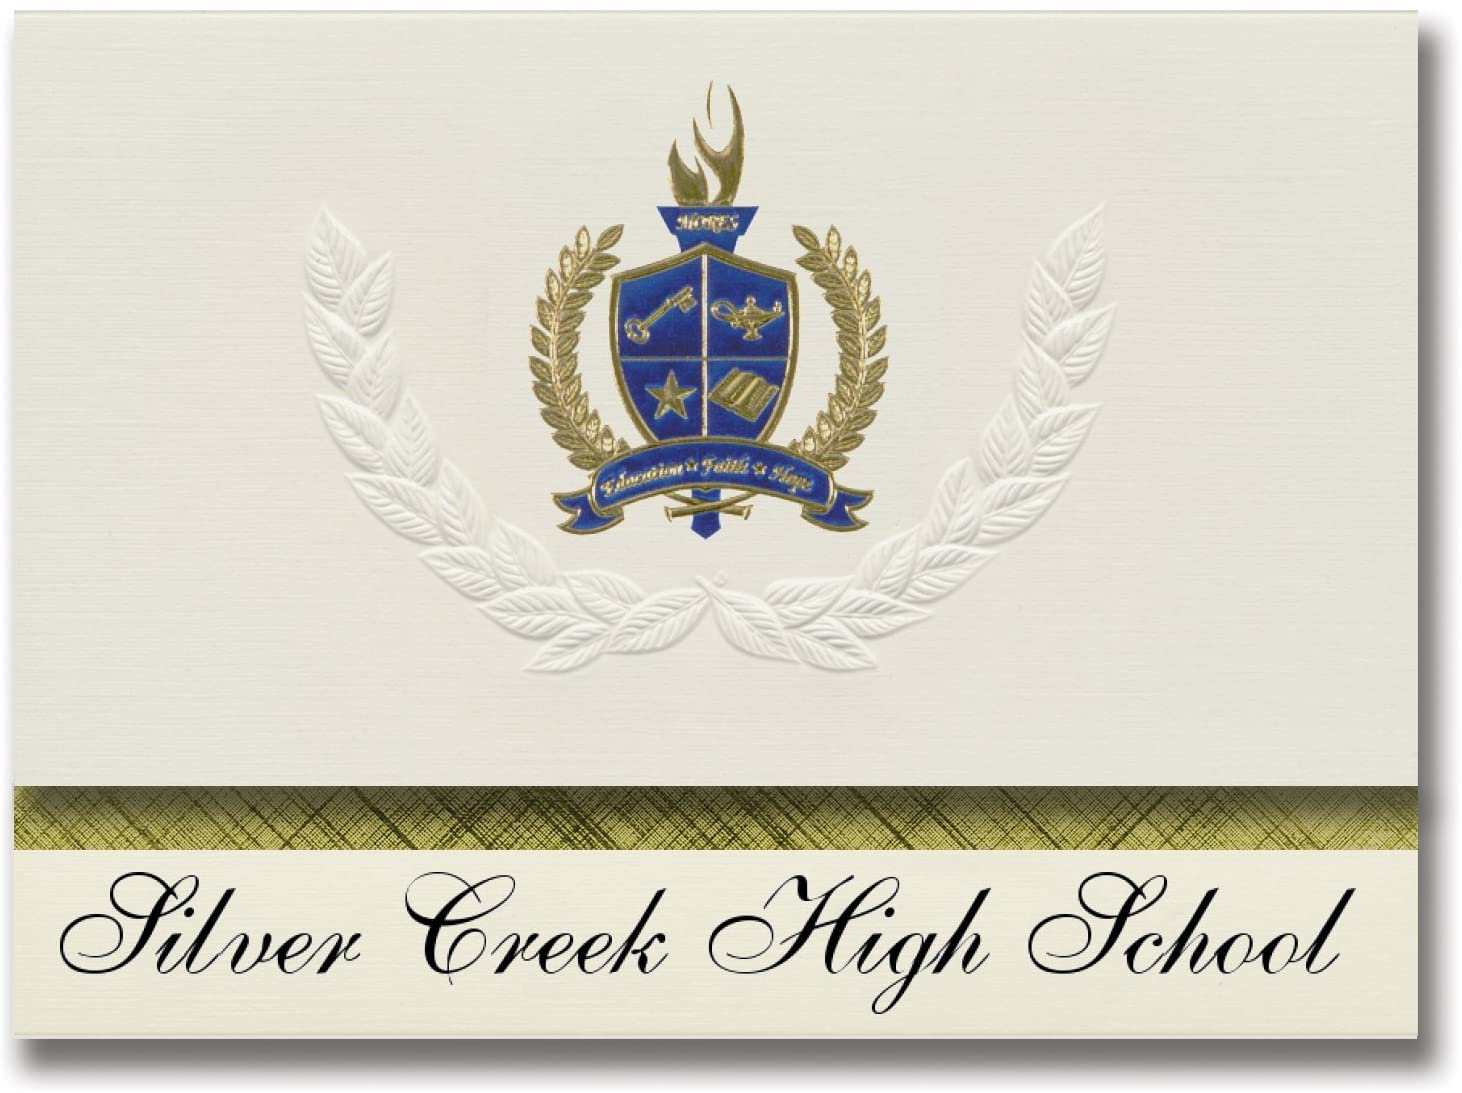 Signature Announcements Silver Creek High School (Hailey, ID) Graduation Announcements, Presidential style, Basic package of 25 with Gold & Blue Metallic Foil seal